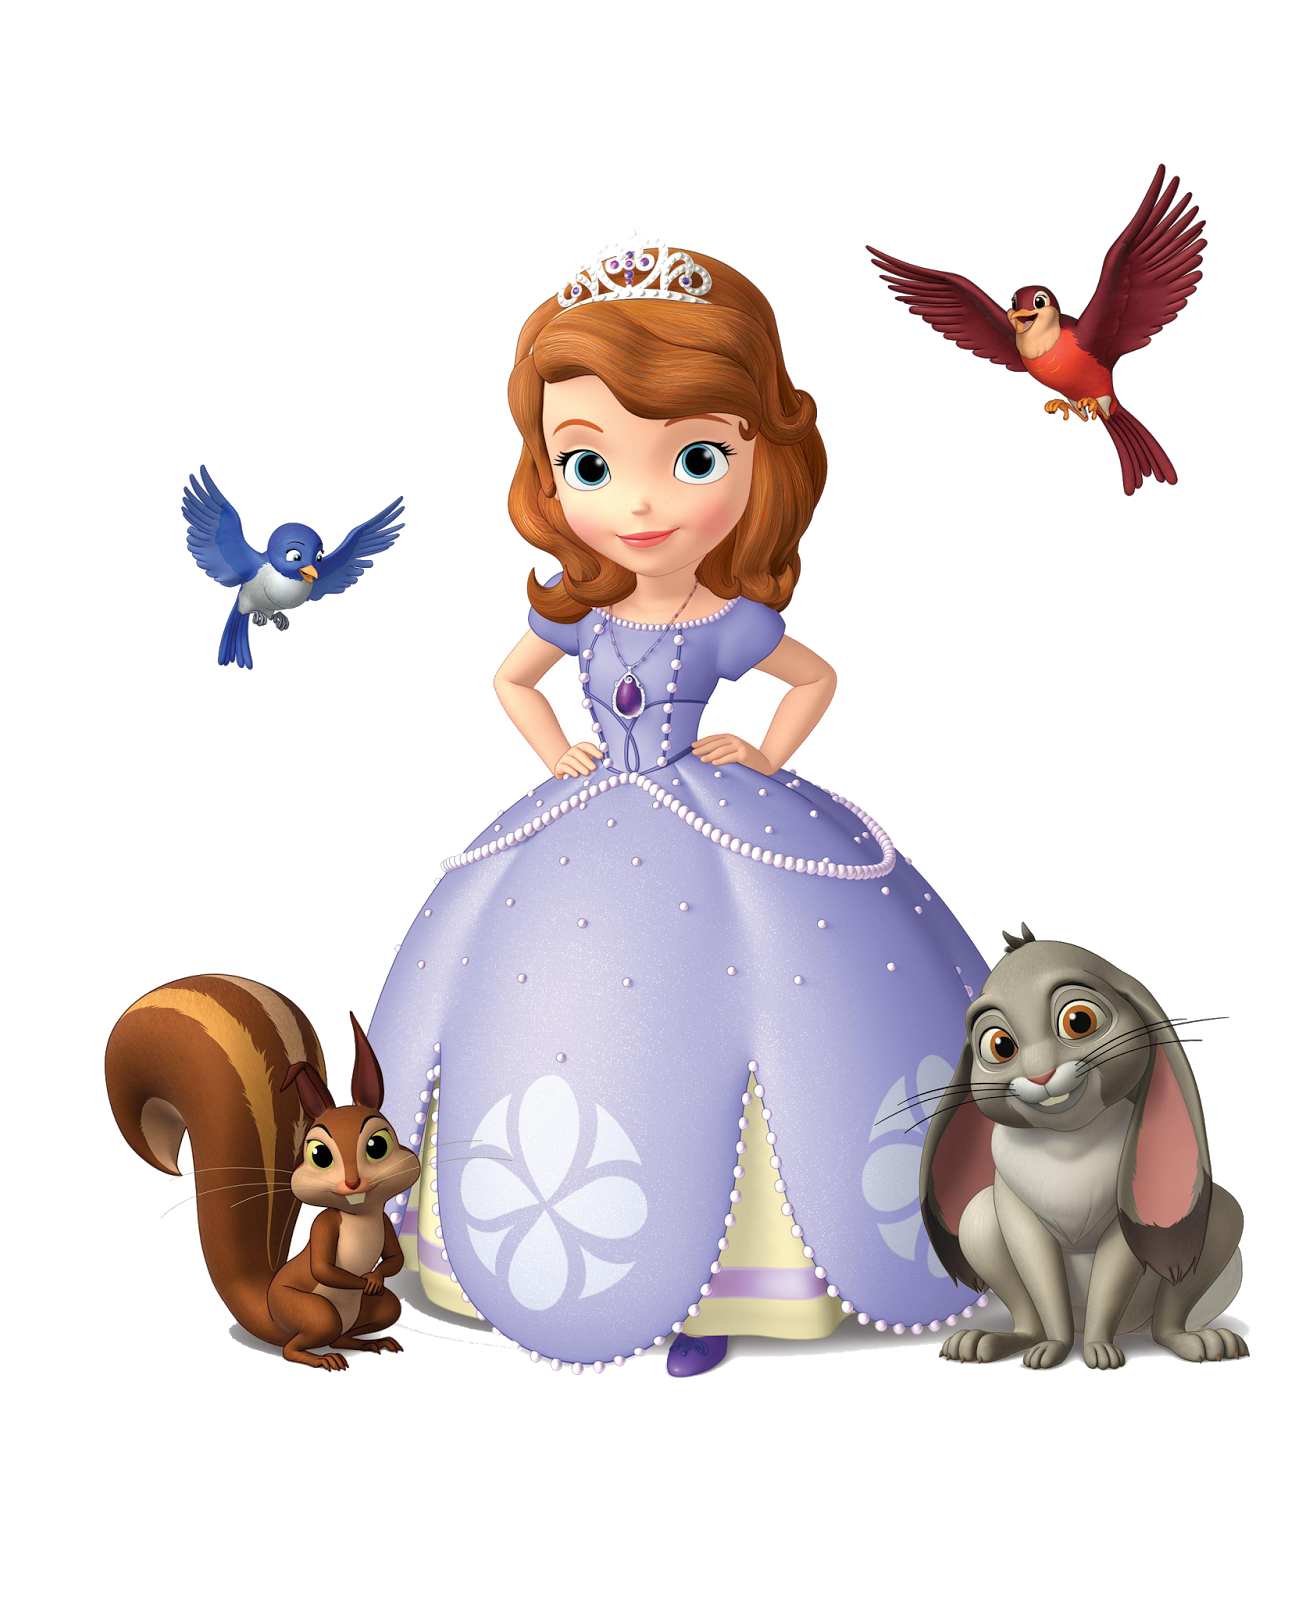 Pregnant Clip Art Free furthermore Abba 38241 additionally Disfraces Superheroinas Saca El Poder Femenino Que Llevas Dentro as well The Matchmaker together with Turma Da Monica Baby. on the iron lady